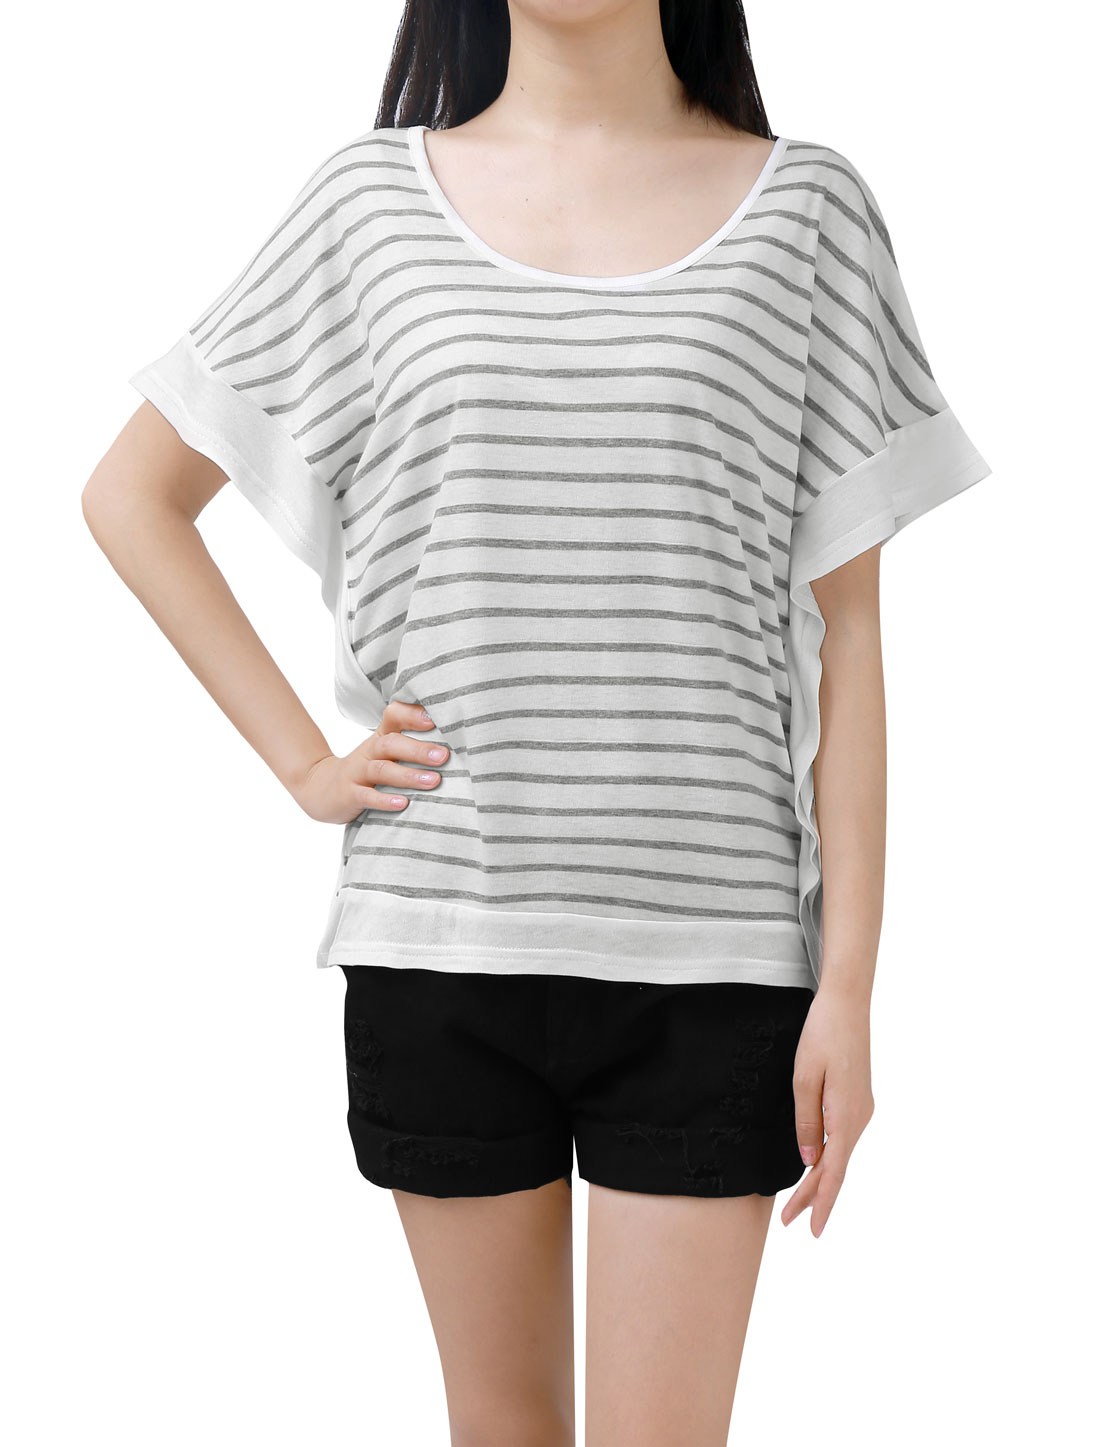 Women Poncho Sleeves Scoop Neck Loose Fit Striped T-shirt White Gray XS